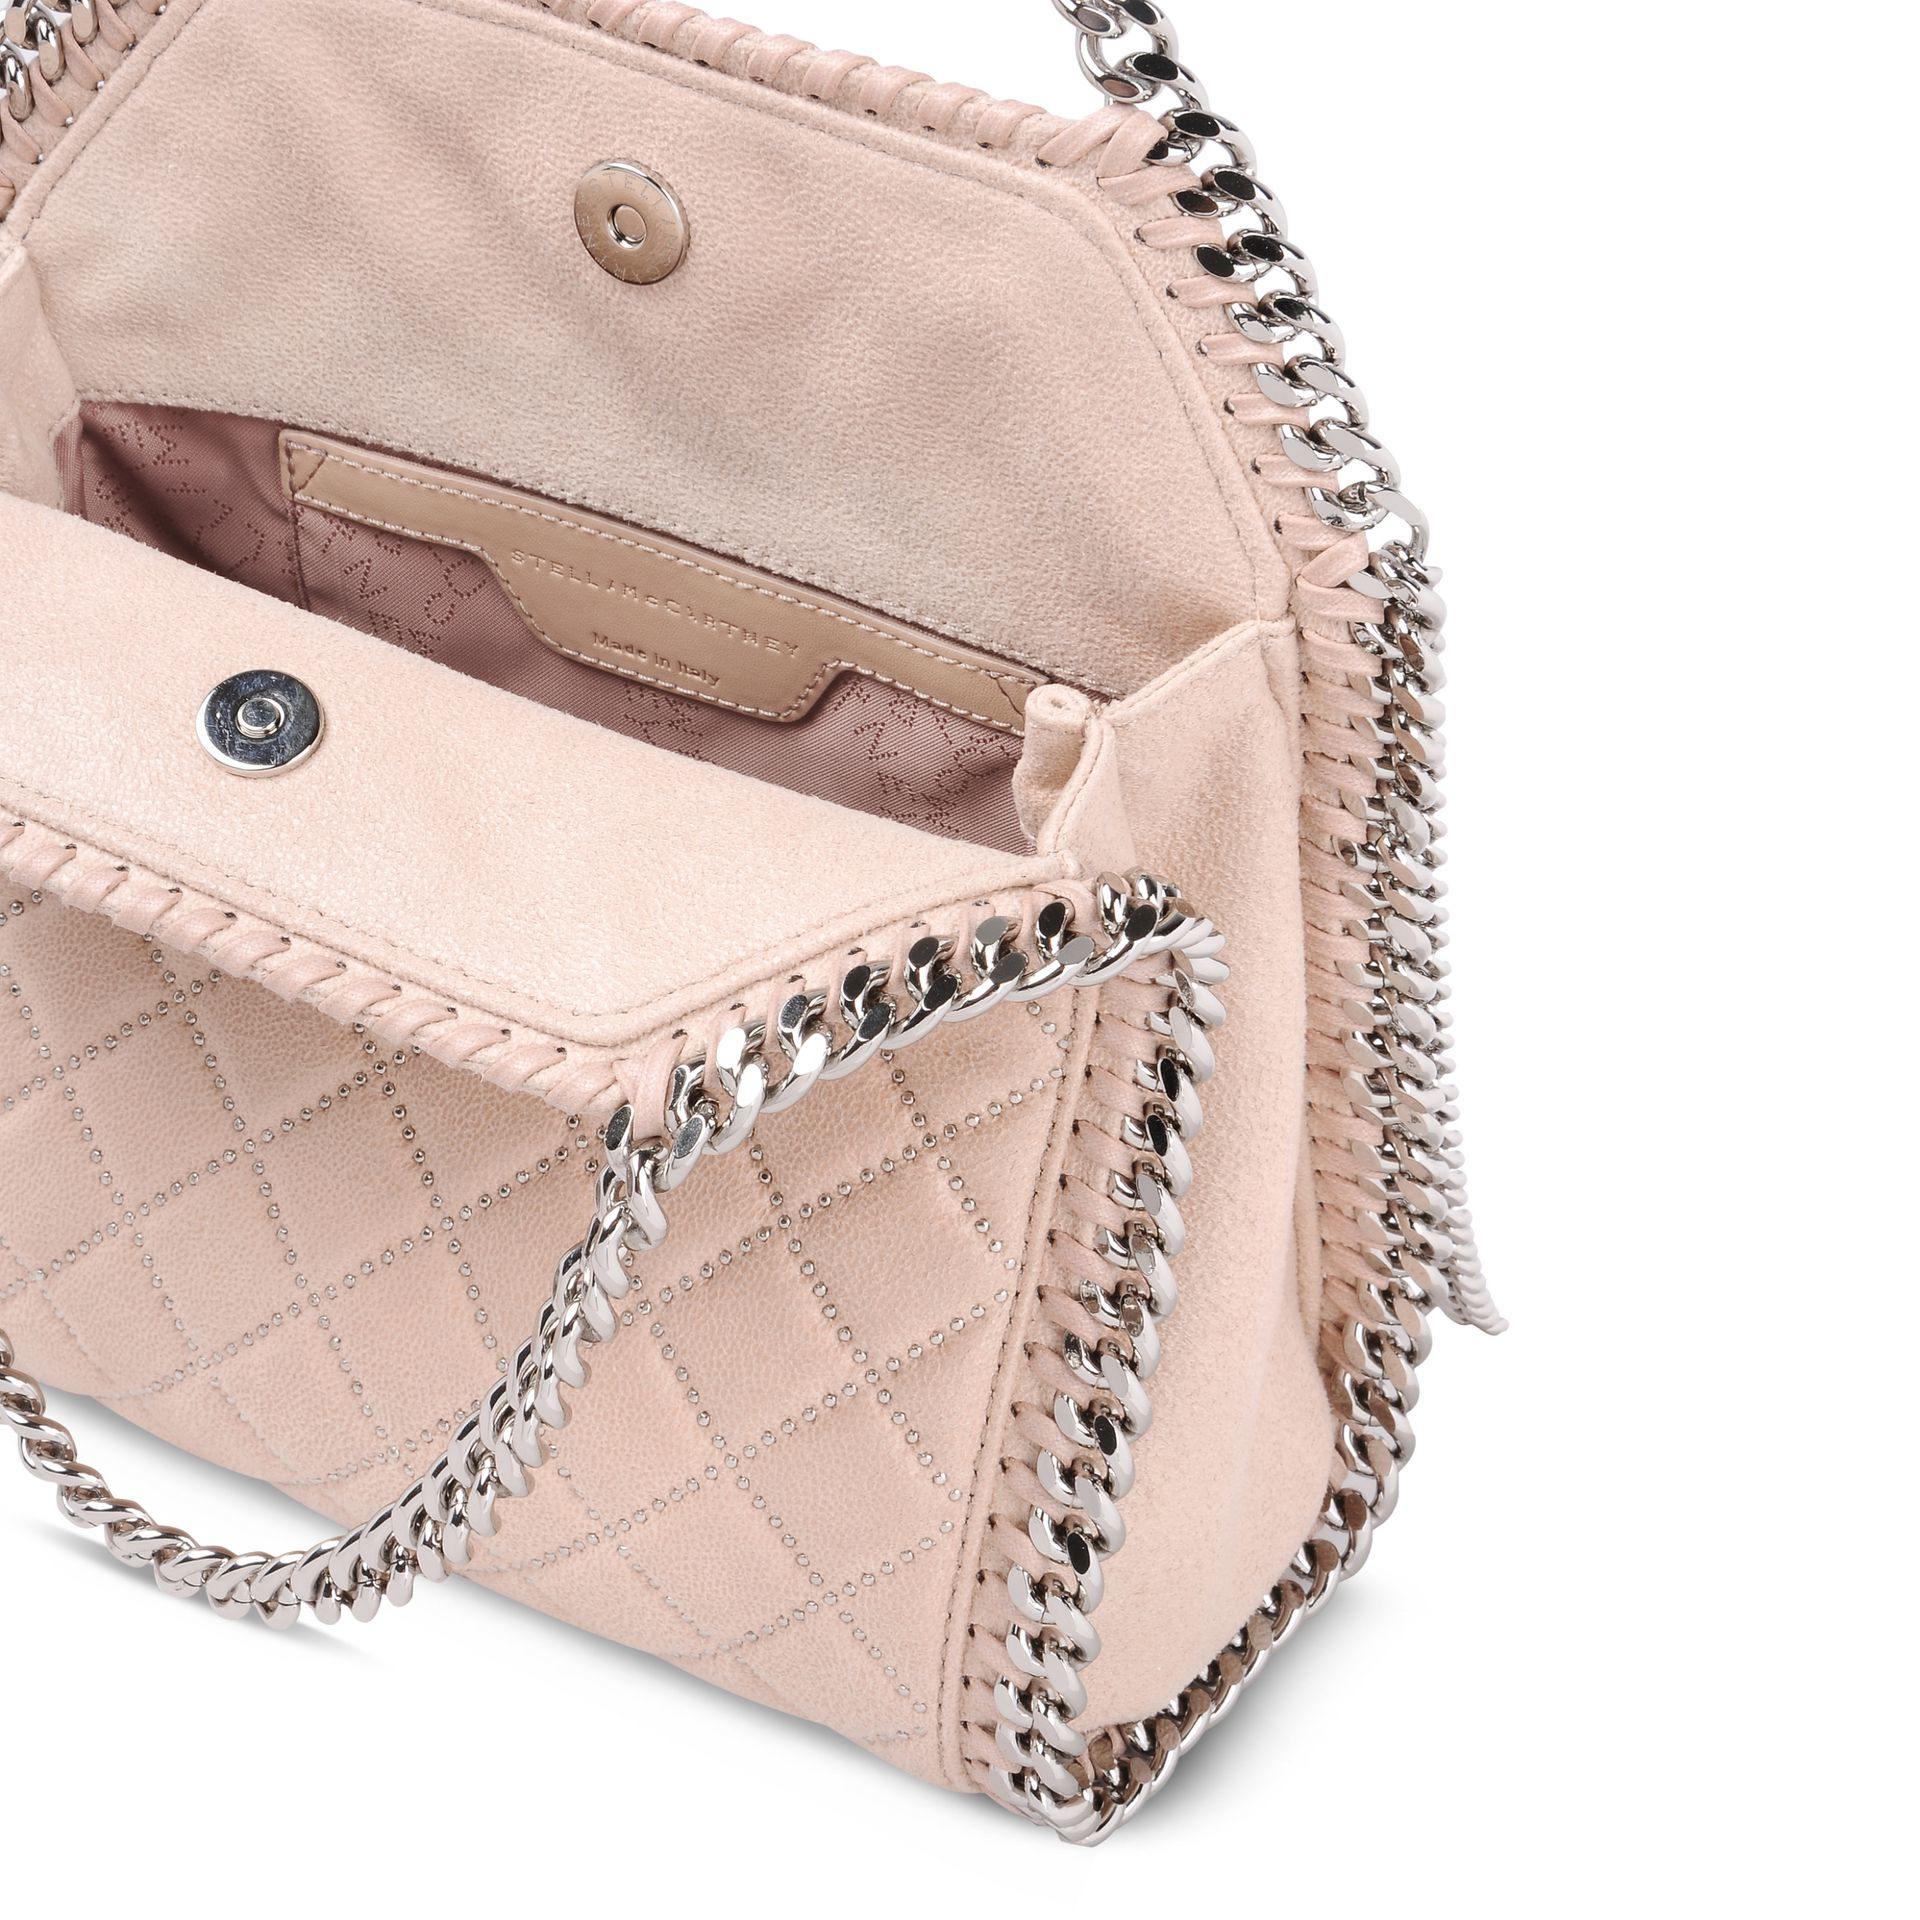 Lyst - Stella McCartney Falabella Studded Quilted Shaggy Deer Mini ... bac25575eb193